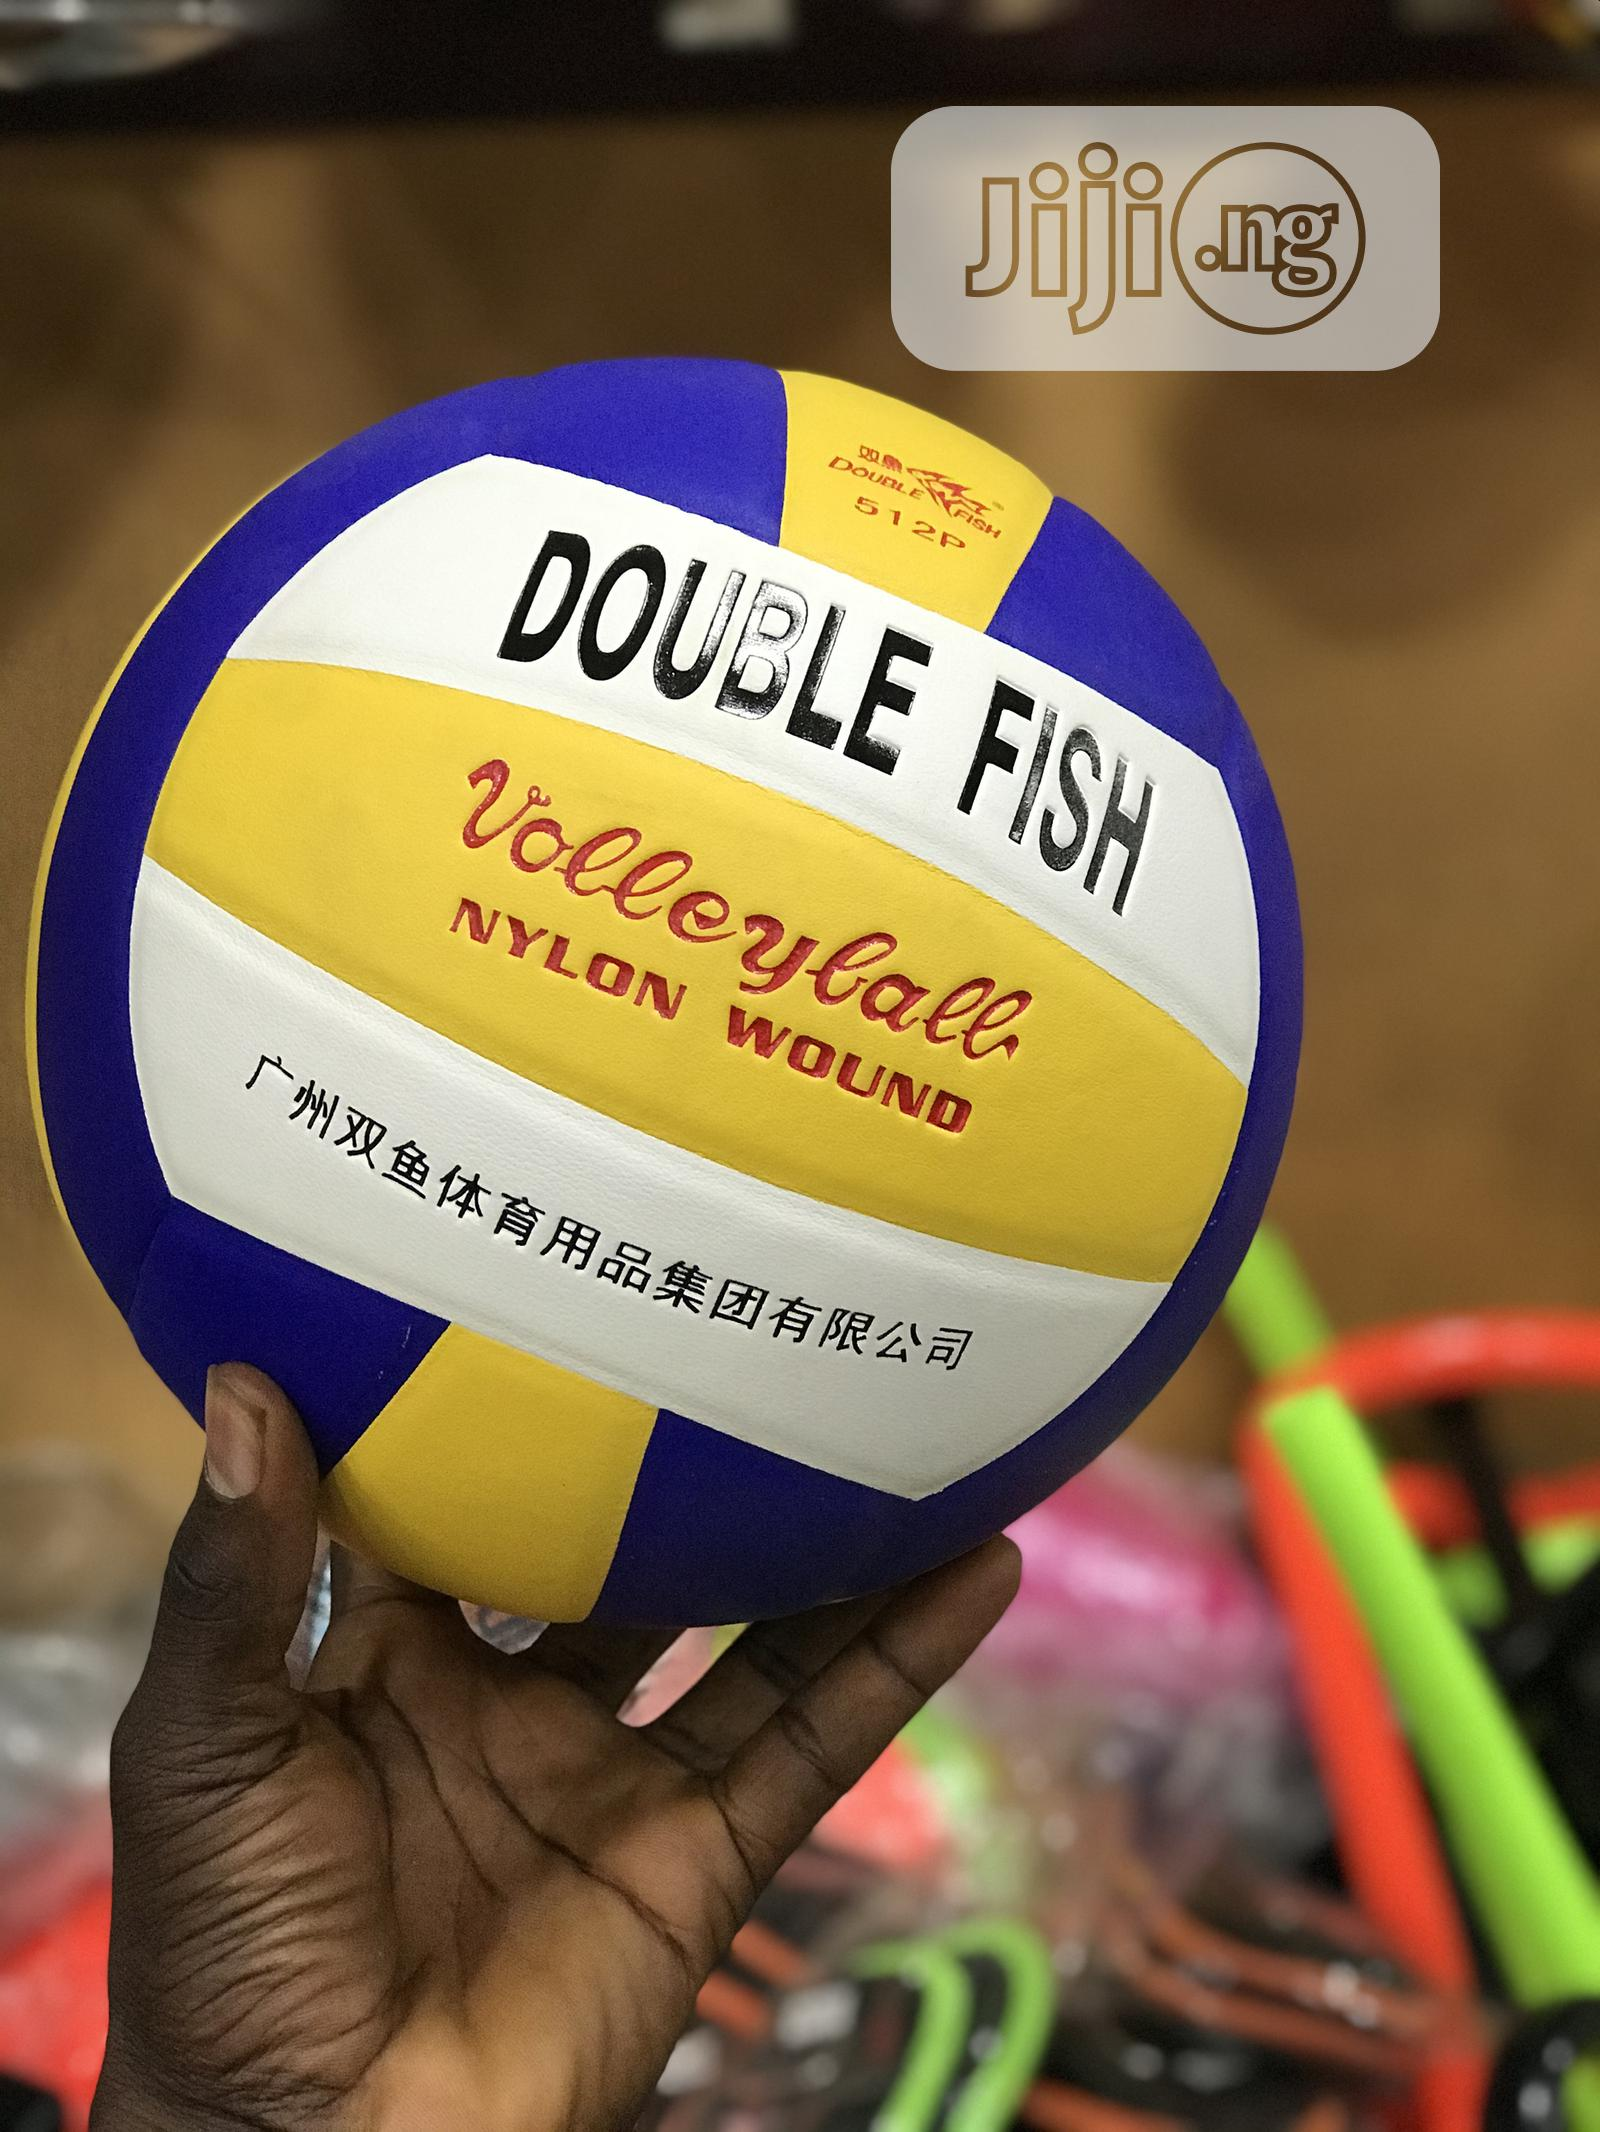 Double Double Fish Volleyball